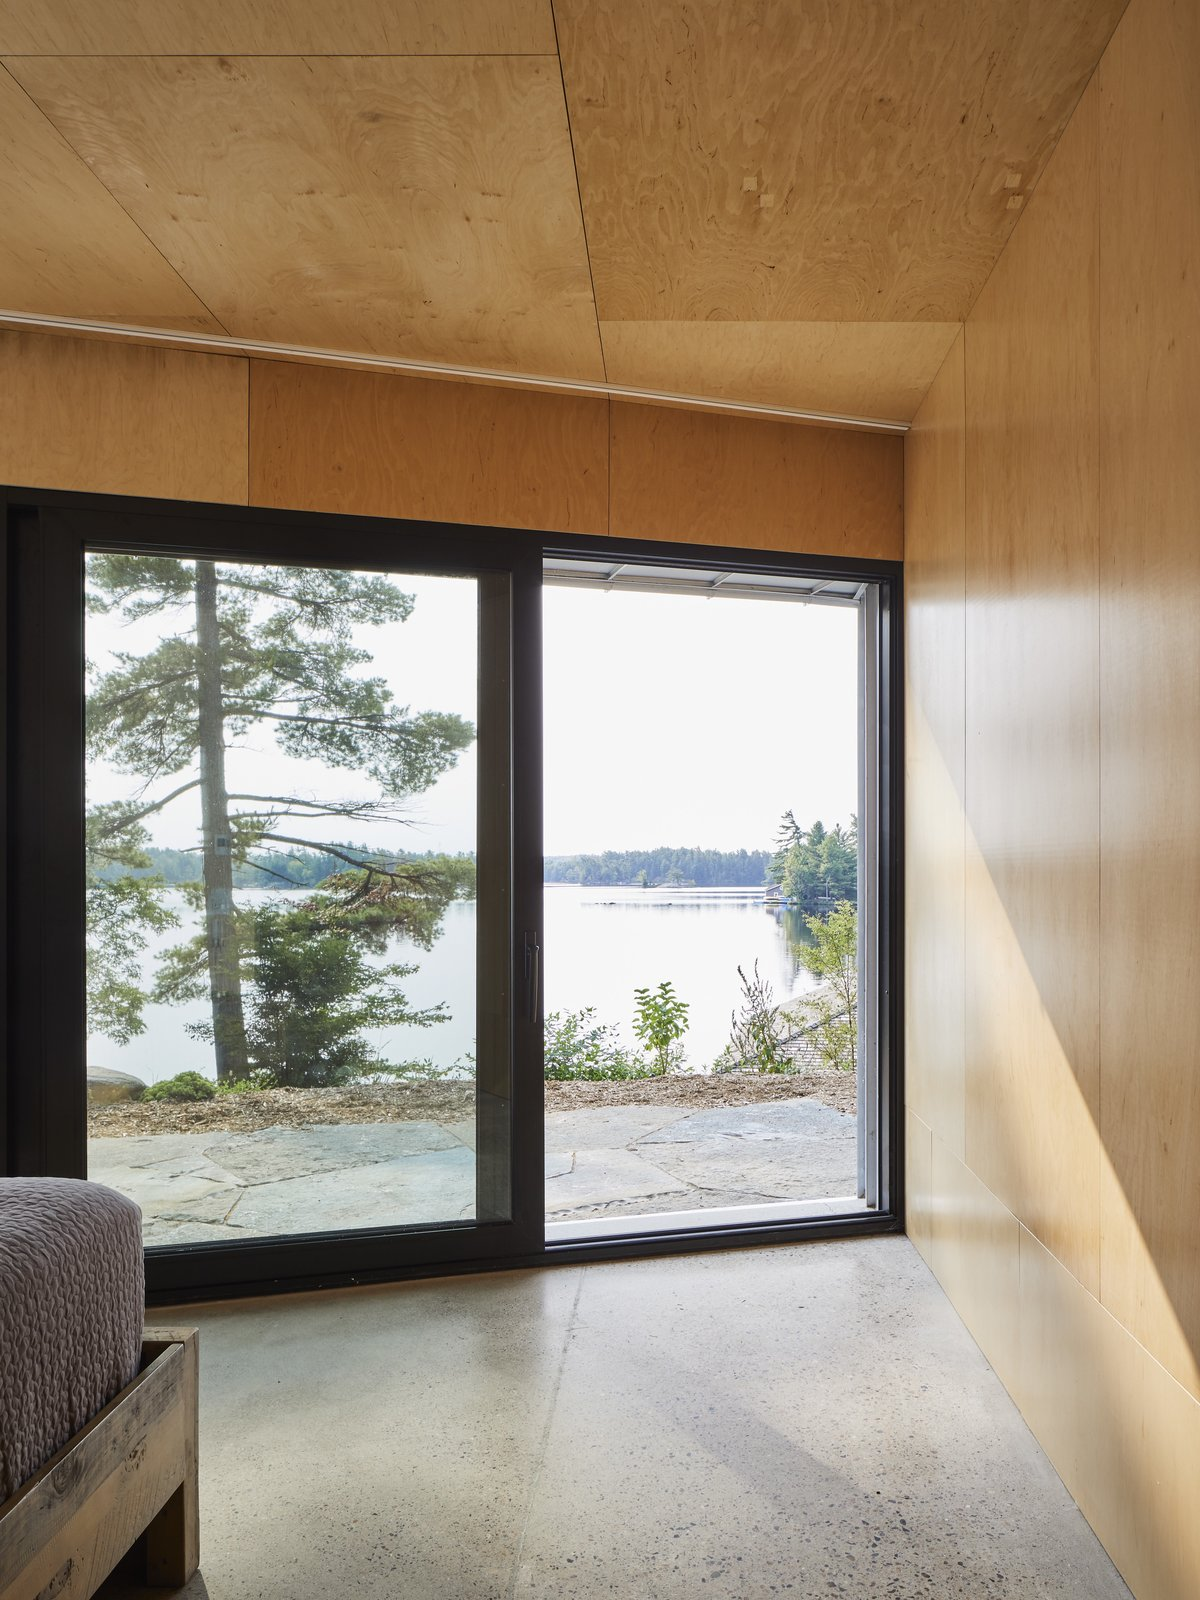 A lake view bedroom.